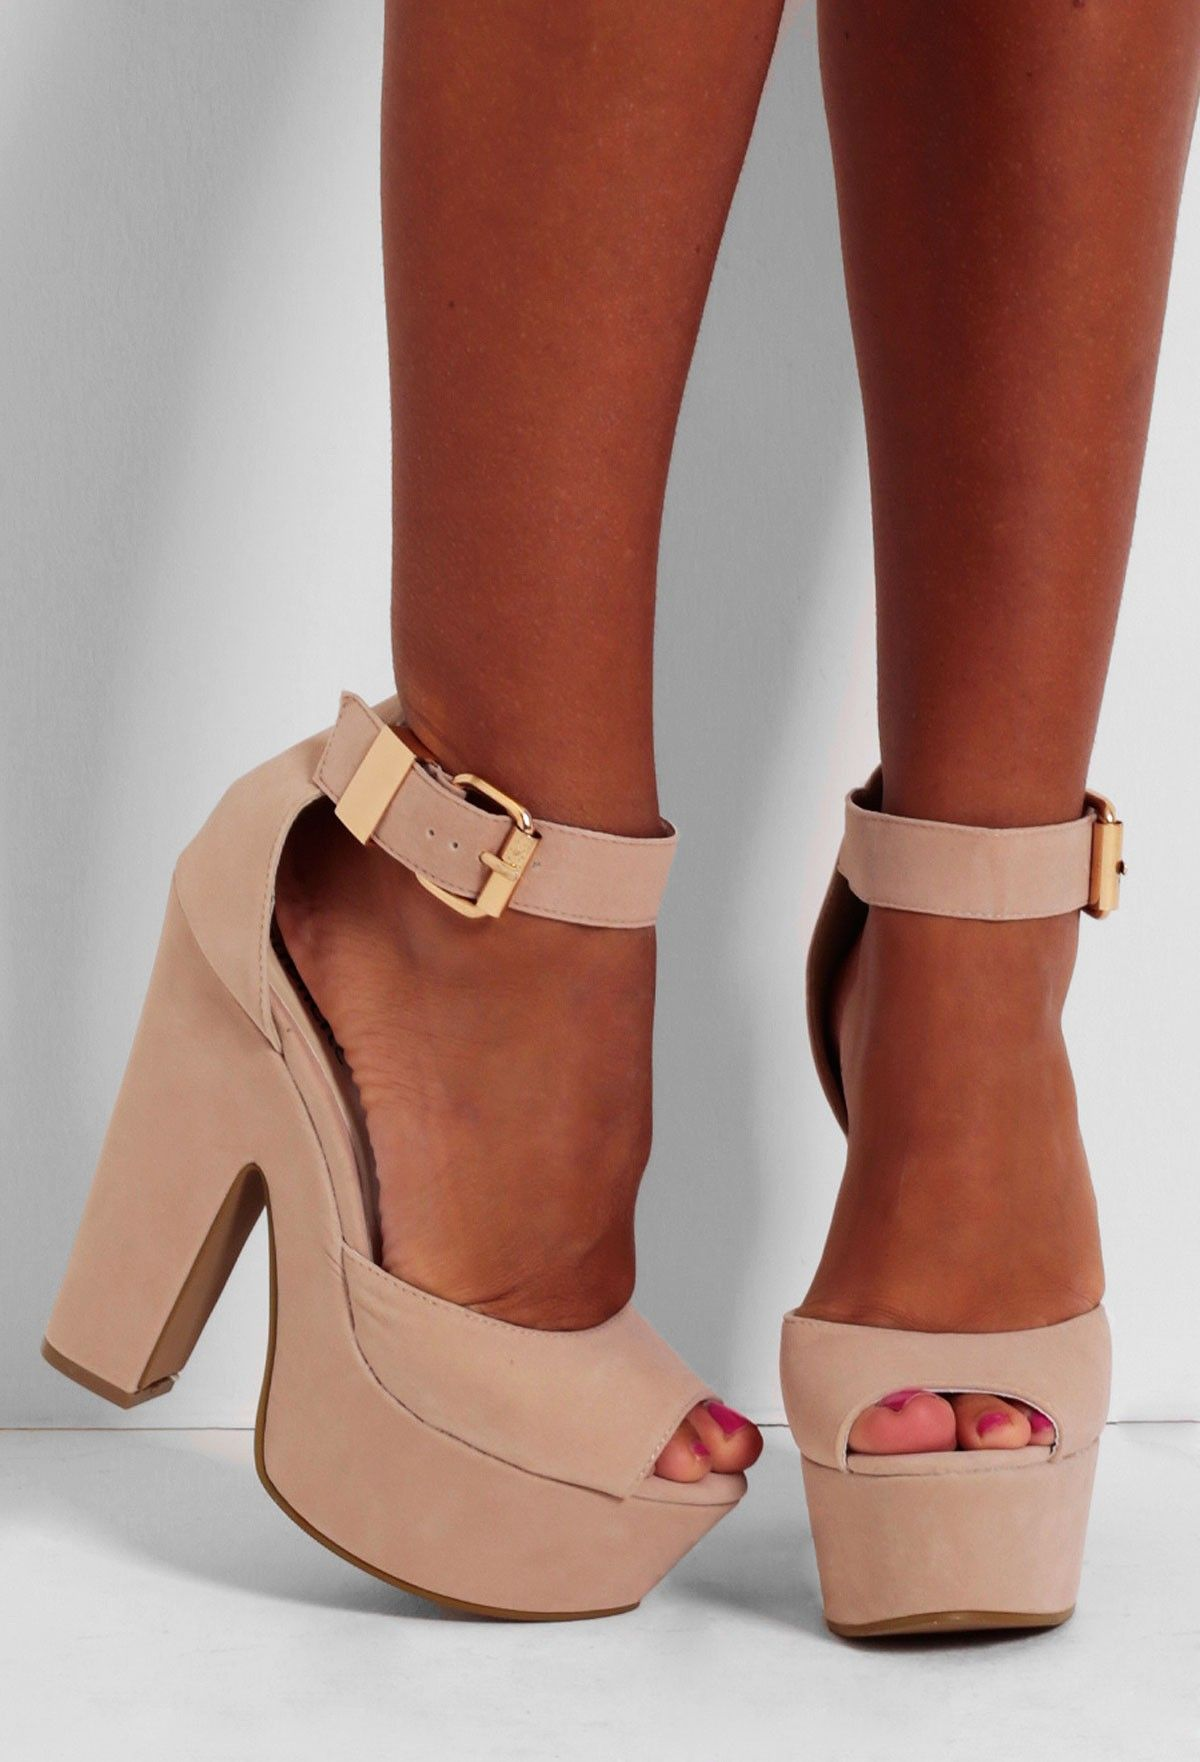 Channel your inner fashionista with these gorgeously girly platforms!  Shop now  www.pinkboutique.co.uk/shoes/frappuccino-nude-suede-effect-platform-shoes.html